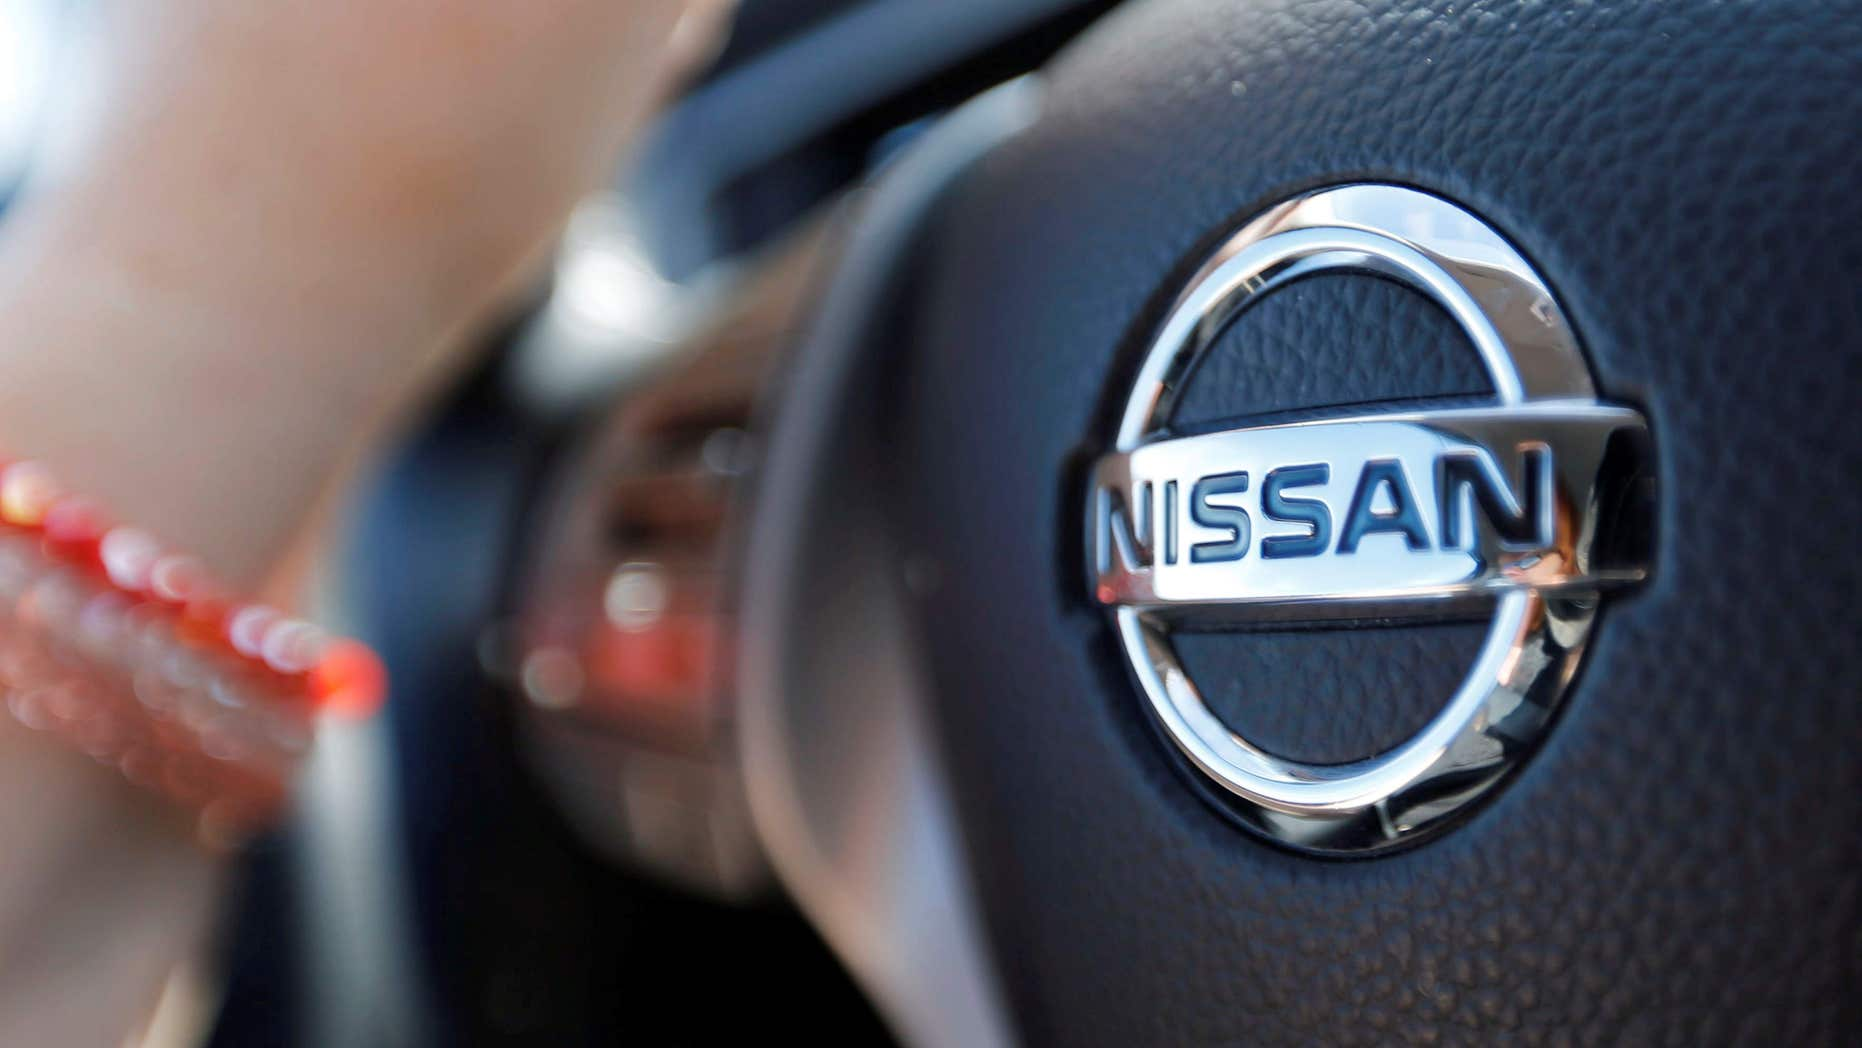 April 23, 2016: A logo of Nissan Motor Co is seen on a steering wheel as a woman drives her car in Golfech, southwestern France.